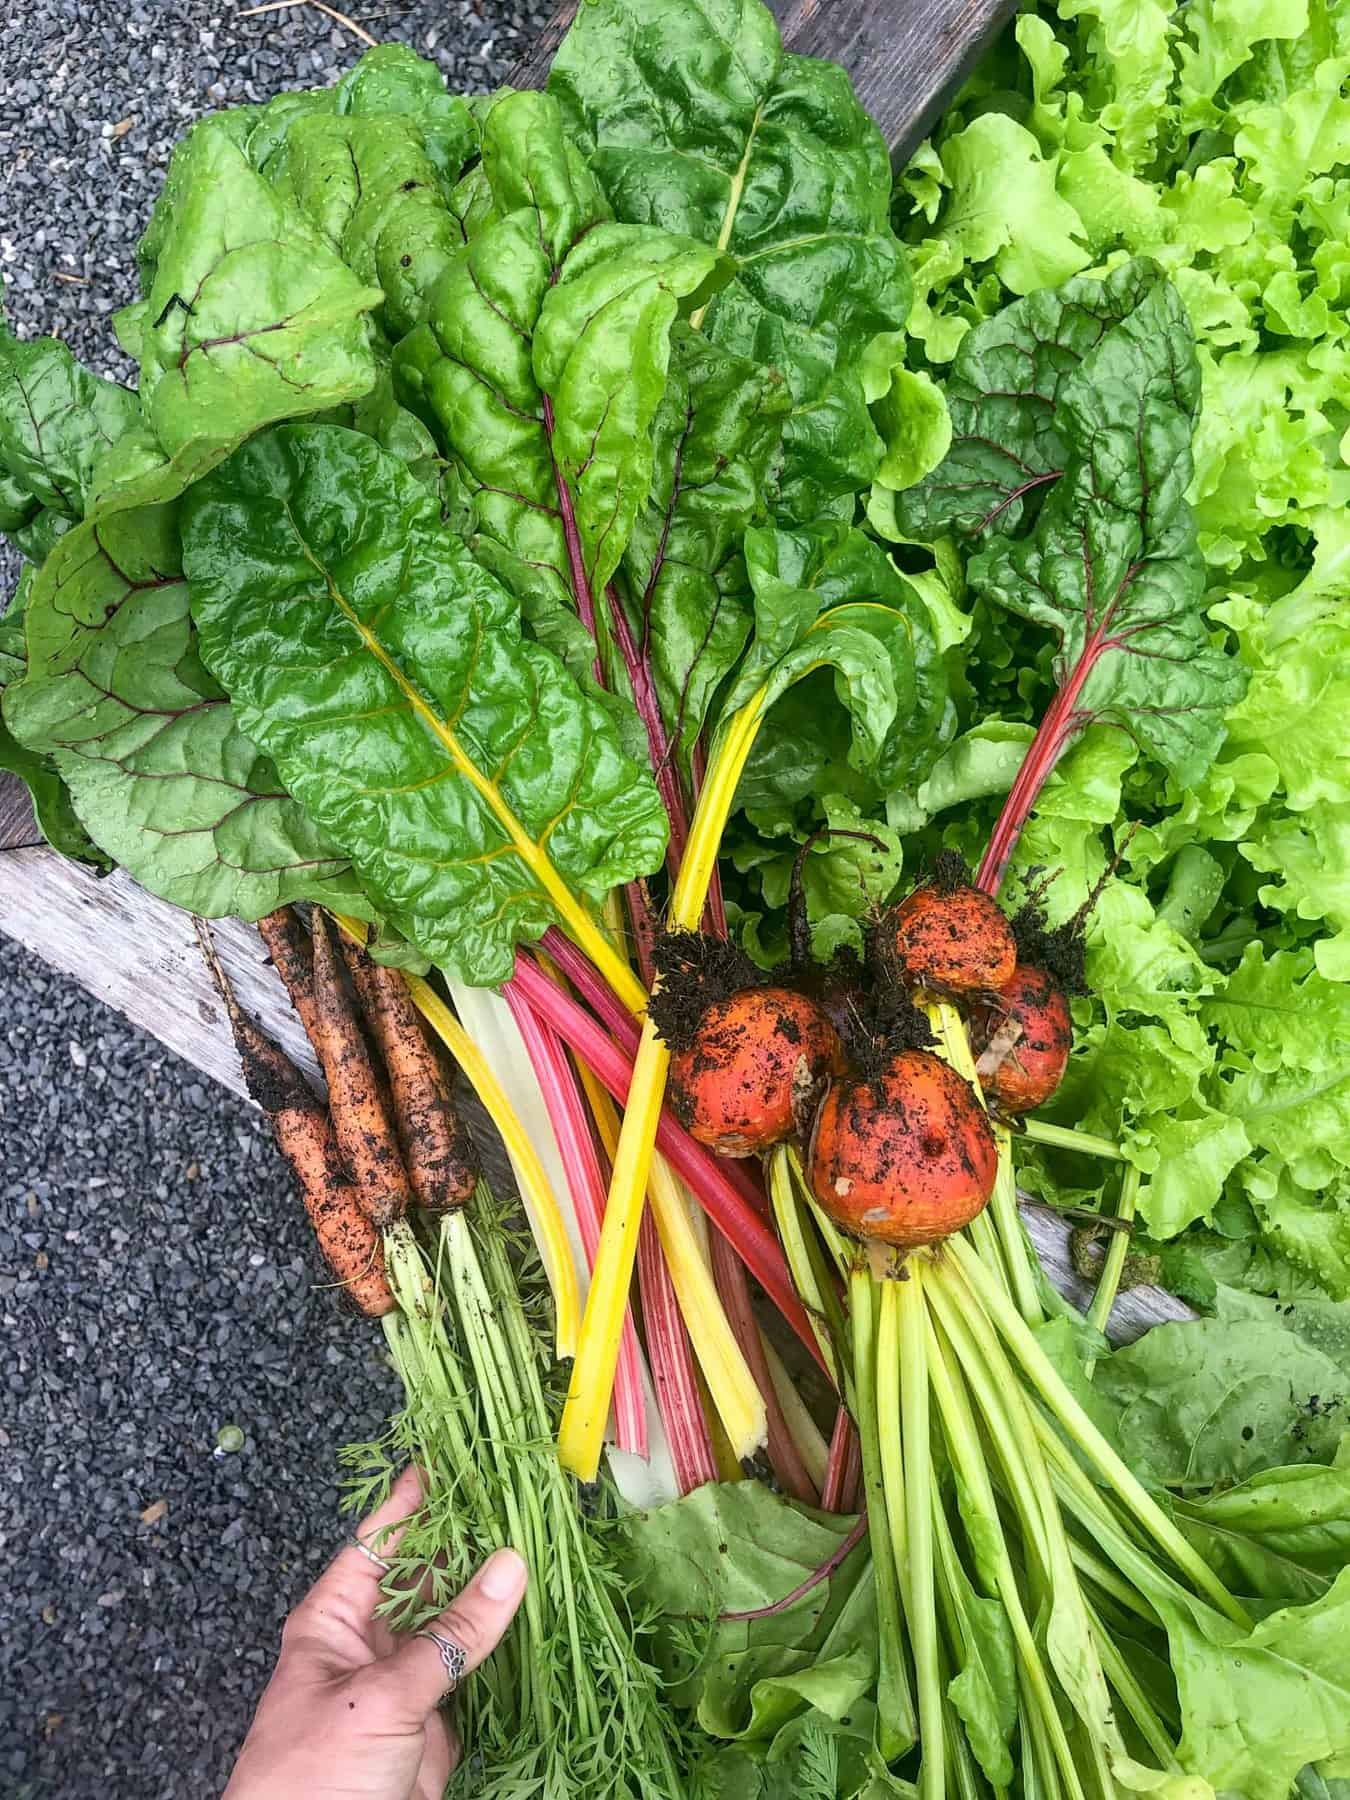 Beets, carrots, and Swiss chard are stacked together in a garden. Dirt still clings to the vegetables.